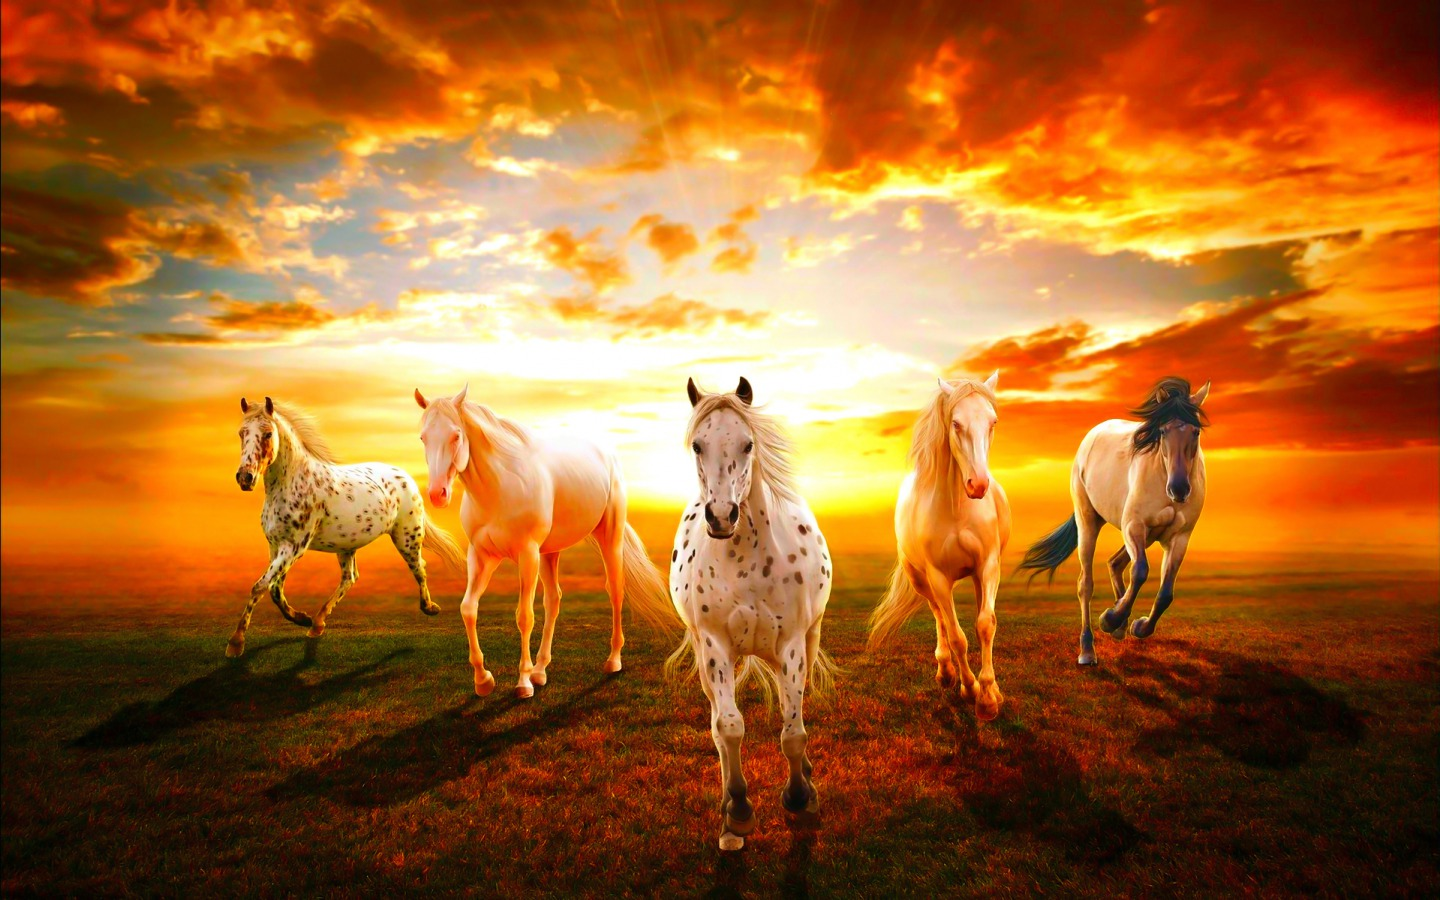 dance map with File Horses Animals 34360440 1440 900 on Game Of Thrones Jason Momoa Audition Tape besides Gold Reef City moreover Stock Image Dj Disco Music Party People Image22215831 in addition scpdca besides The Altamont Stones Concert And Murder.